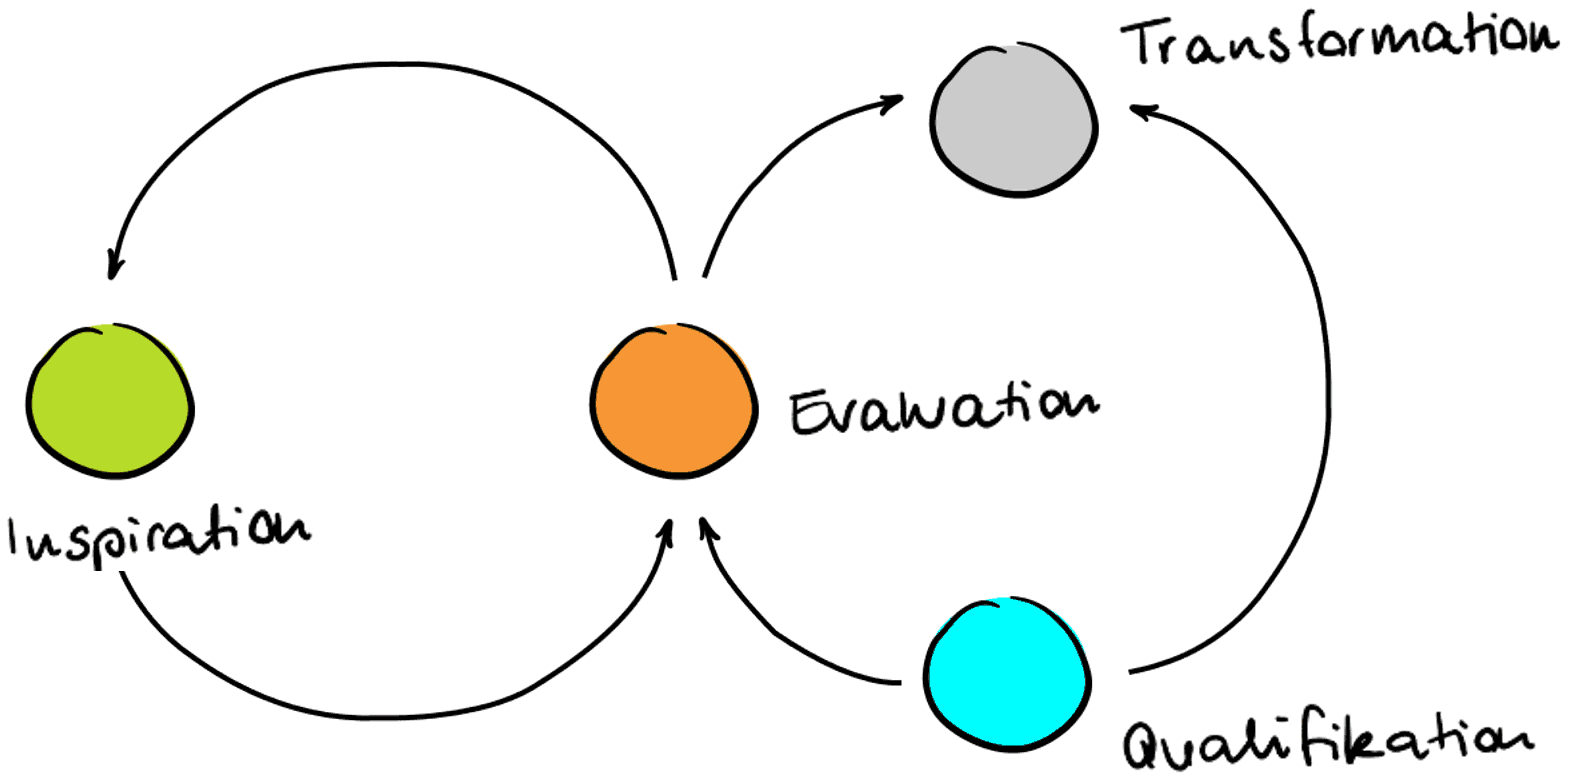 Agile Organisation Inspiration Evaluation Transformation Qualifikation